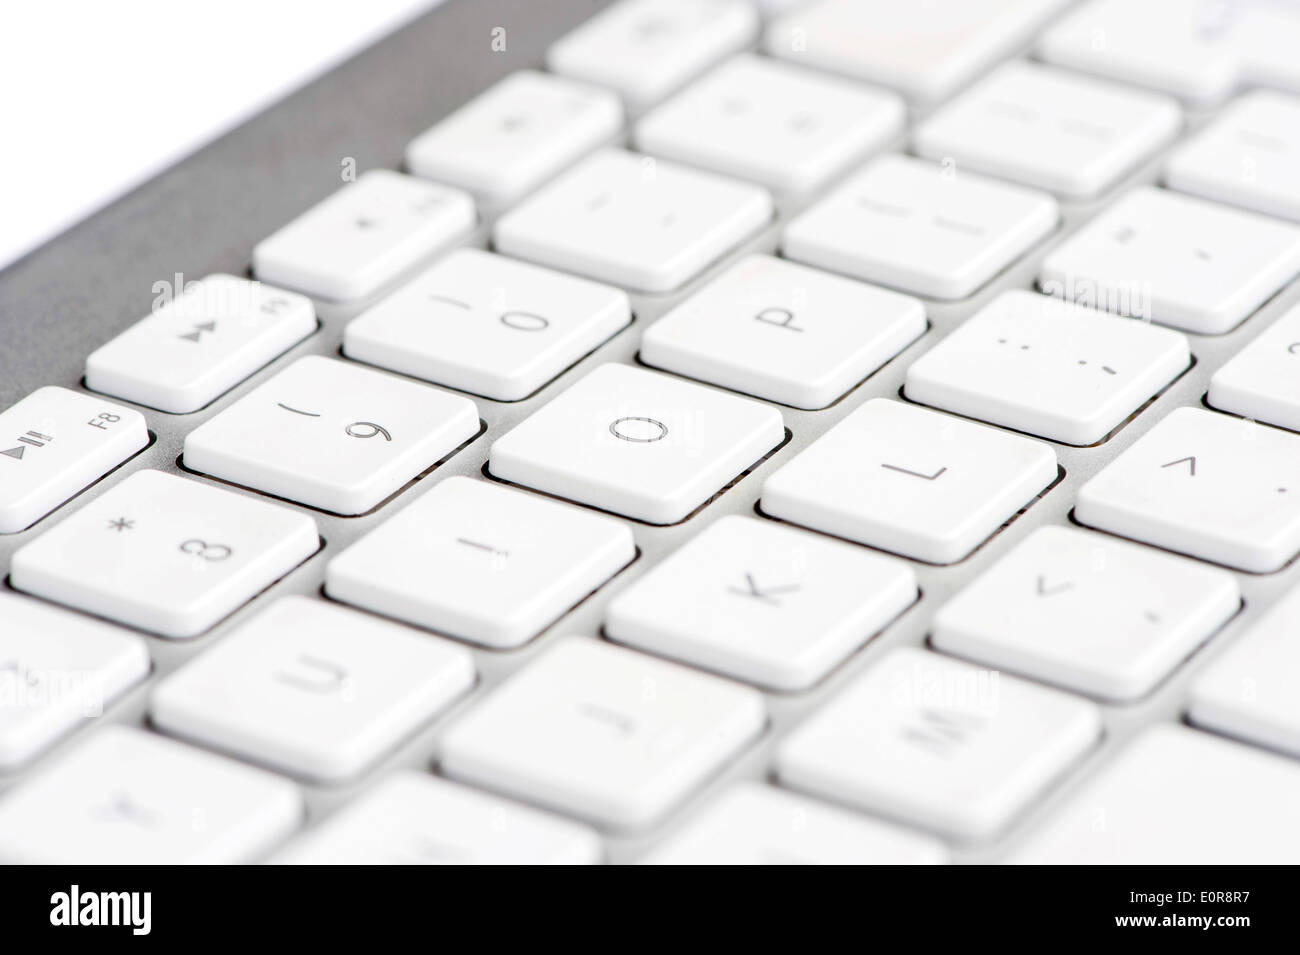 Apple mac white Keyboard focused on the letter O - Stock Image